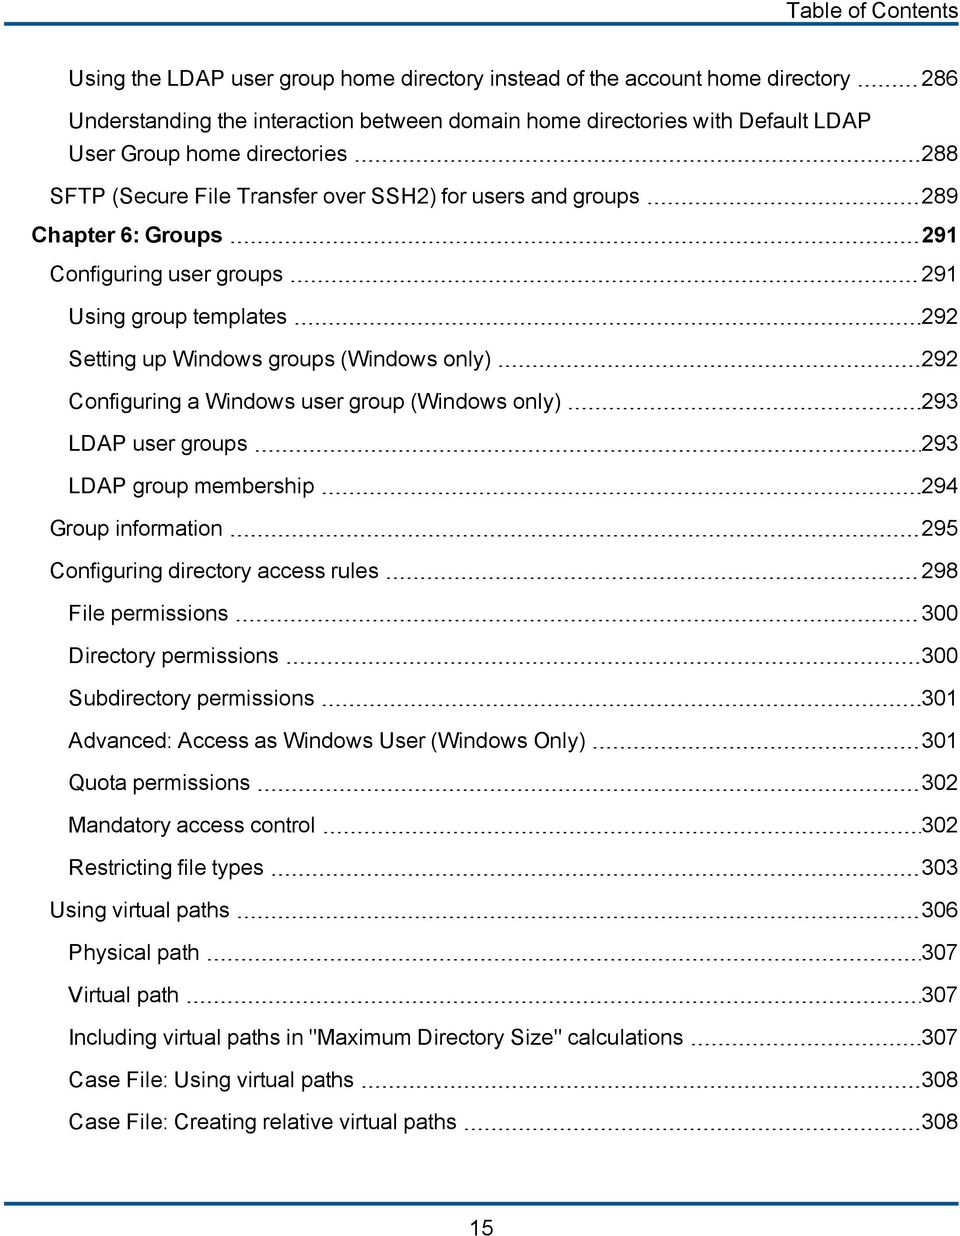 Configuring a Windows user group (Windows only) 293 LDAP user groups 293 LDAP group membership 294 Group information 295 Configuring directory access rules 298 File permissions 300 Directory